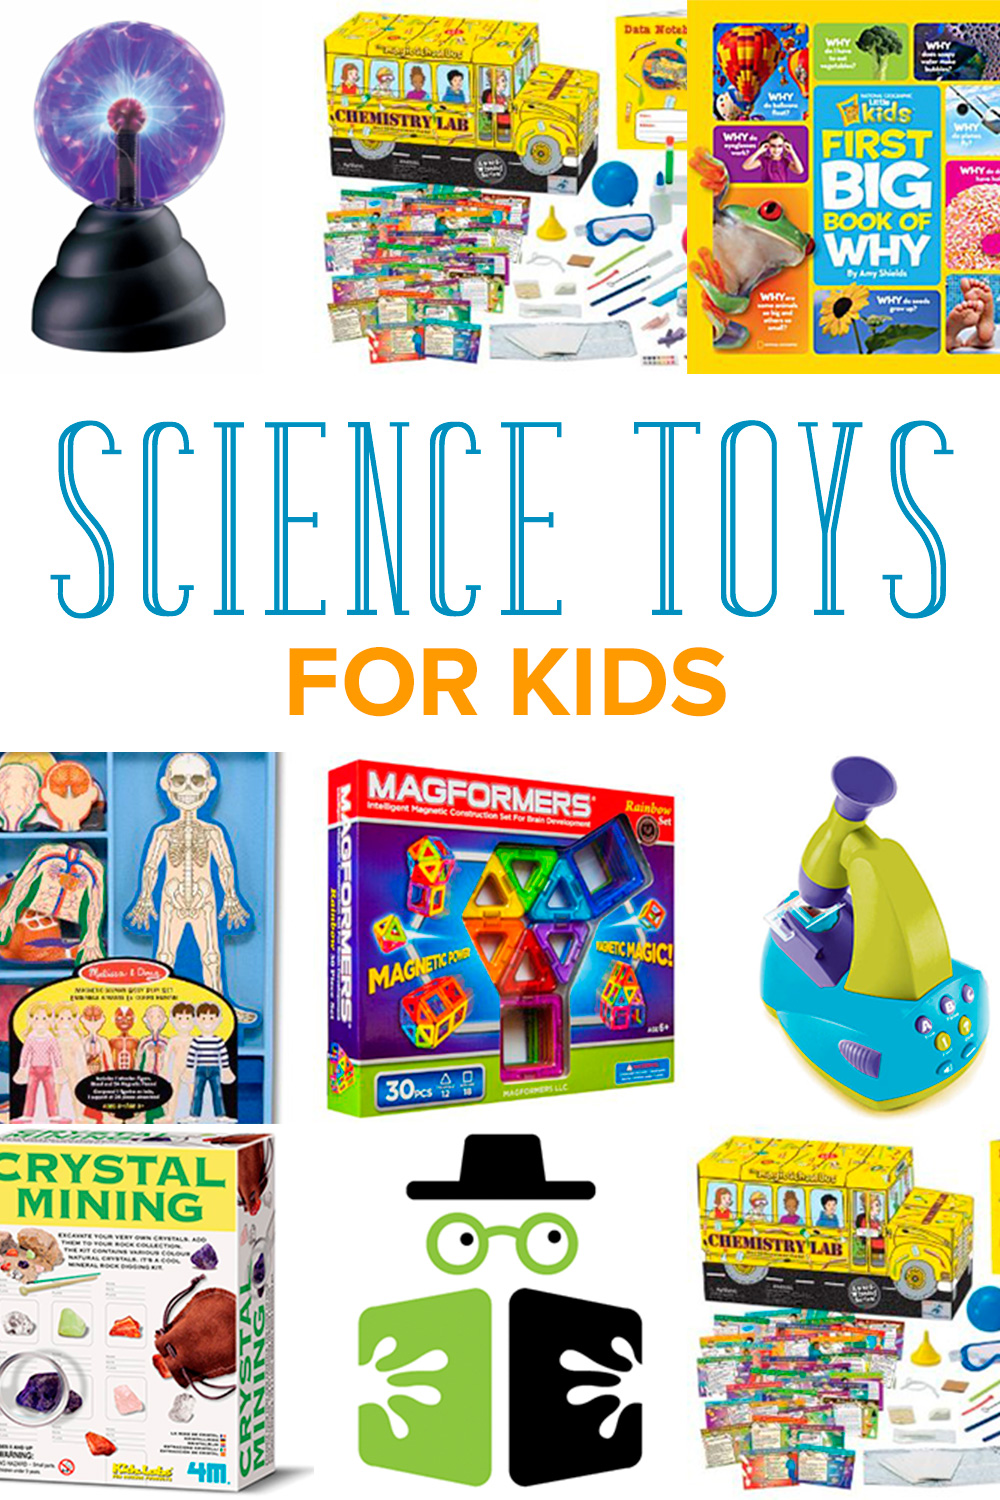 Looking for cool kids science toys? These 8 ideas are perfect for kids ages 3-6. They encourage curiosity and discussion about how things work.